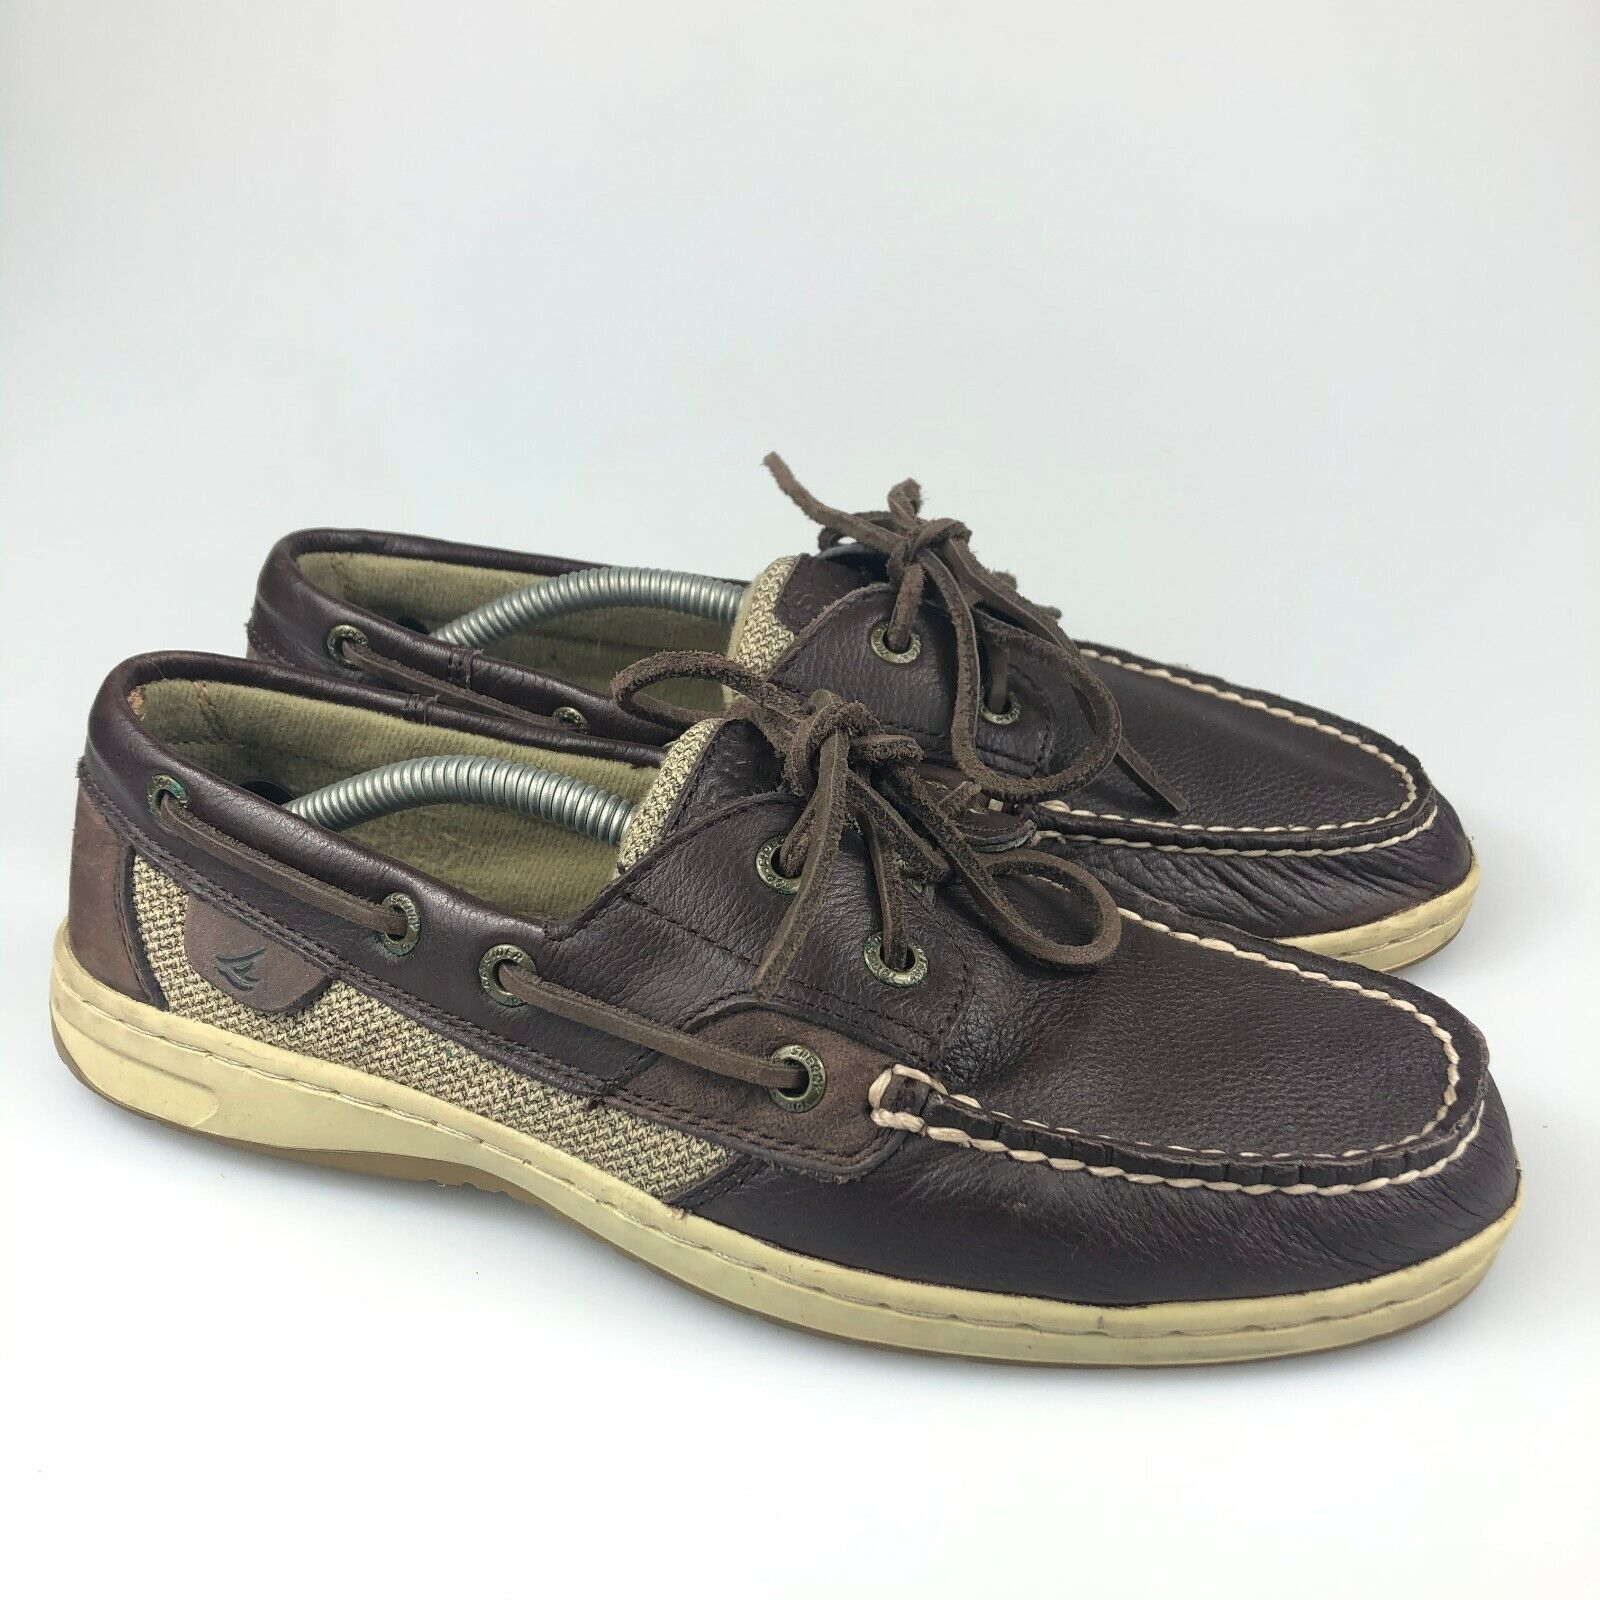 Sperry Womens Top-Sider 9173907 Brown Lace Up Casual Leather Boat Shoes Size 8